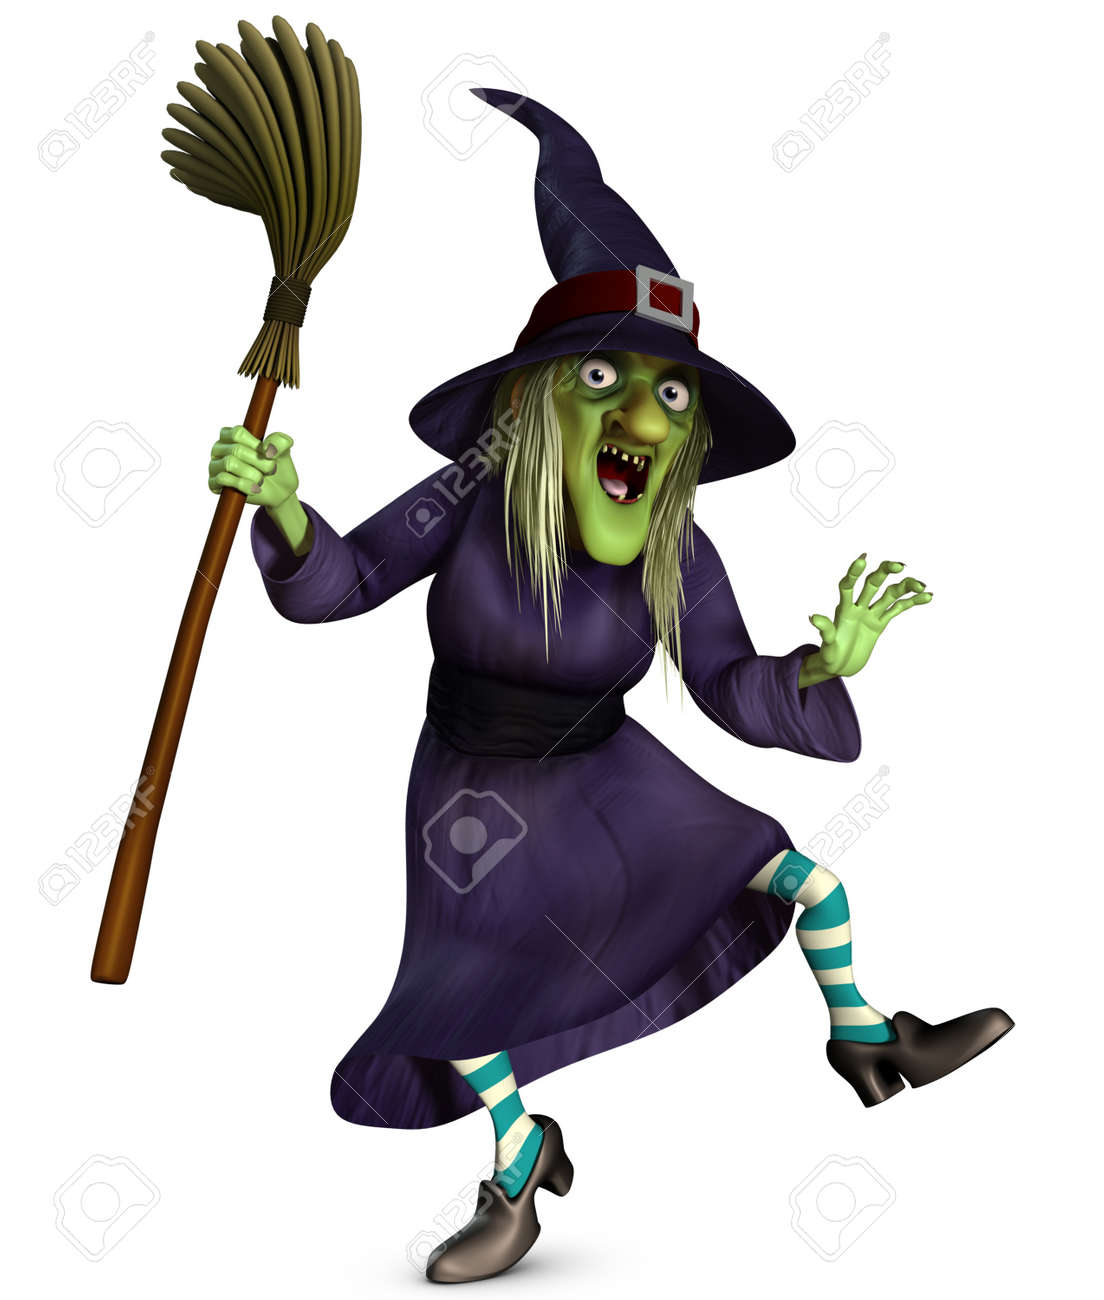 3d Cartoon Halloween Beldame With Broom Stock Photo, Picture And ...